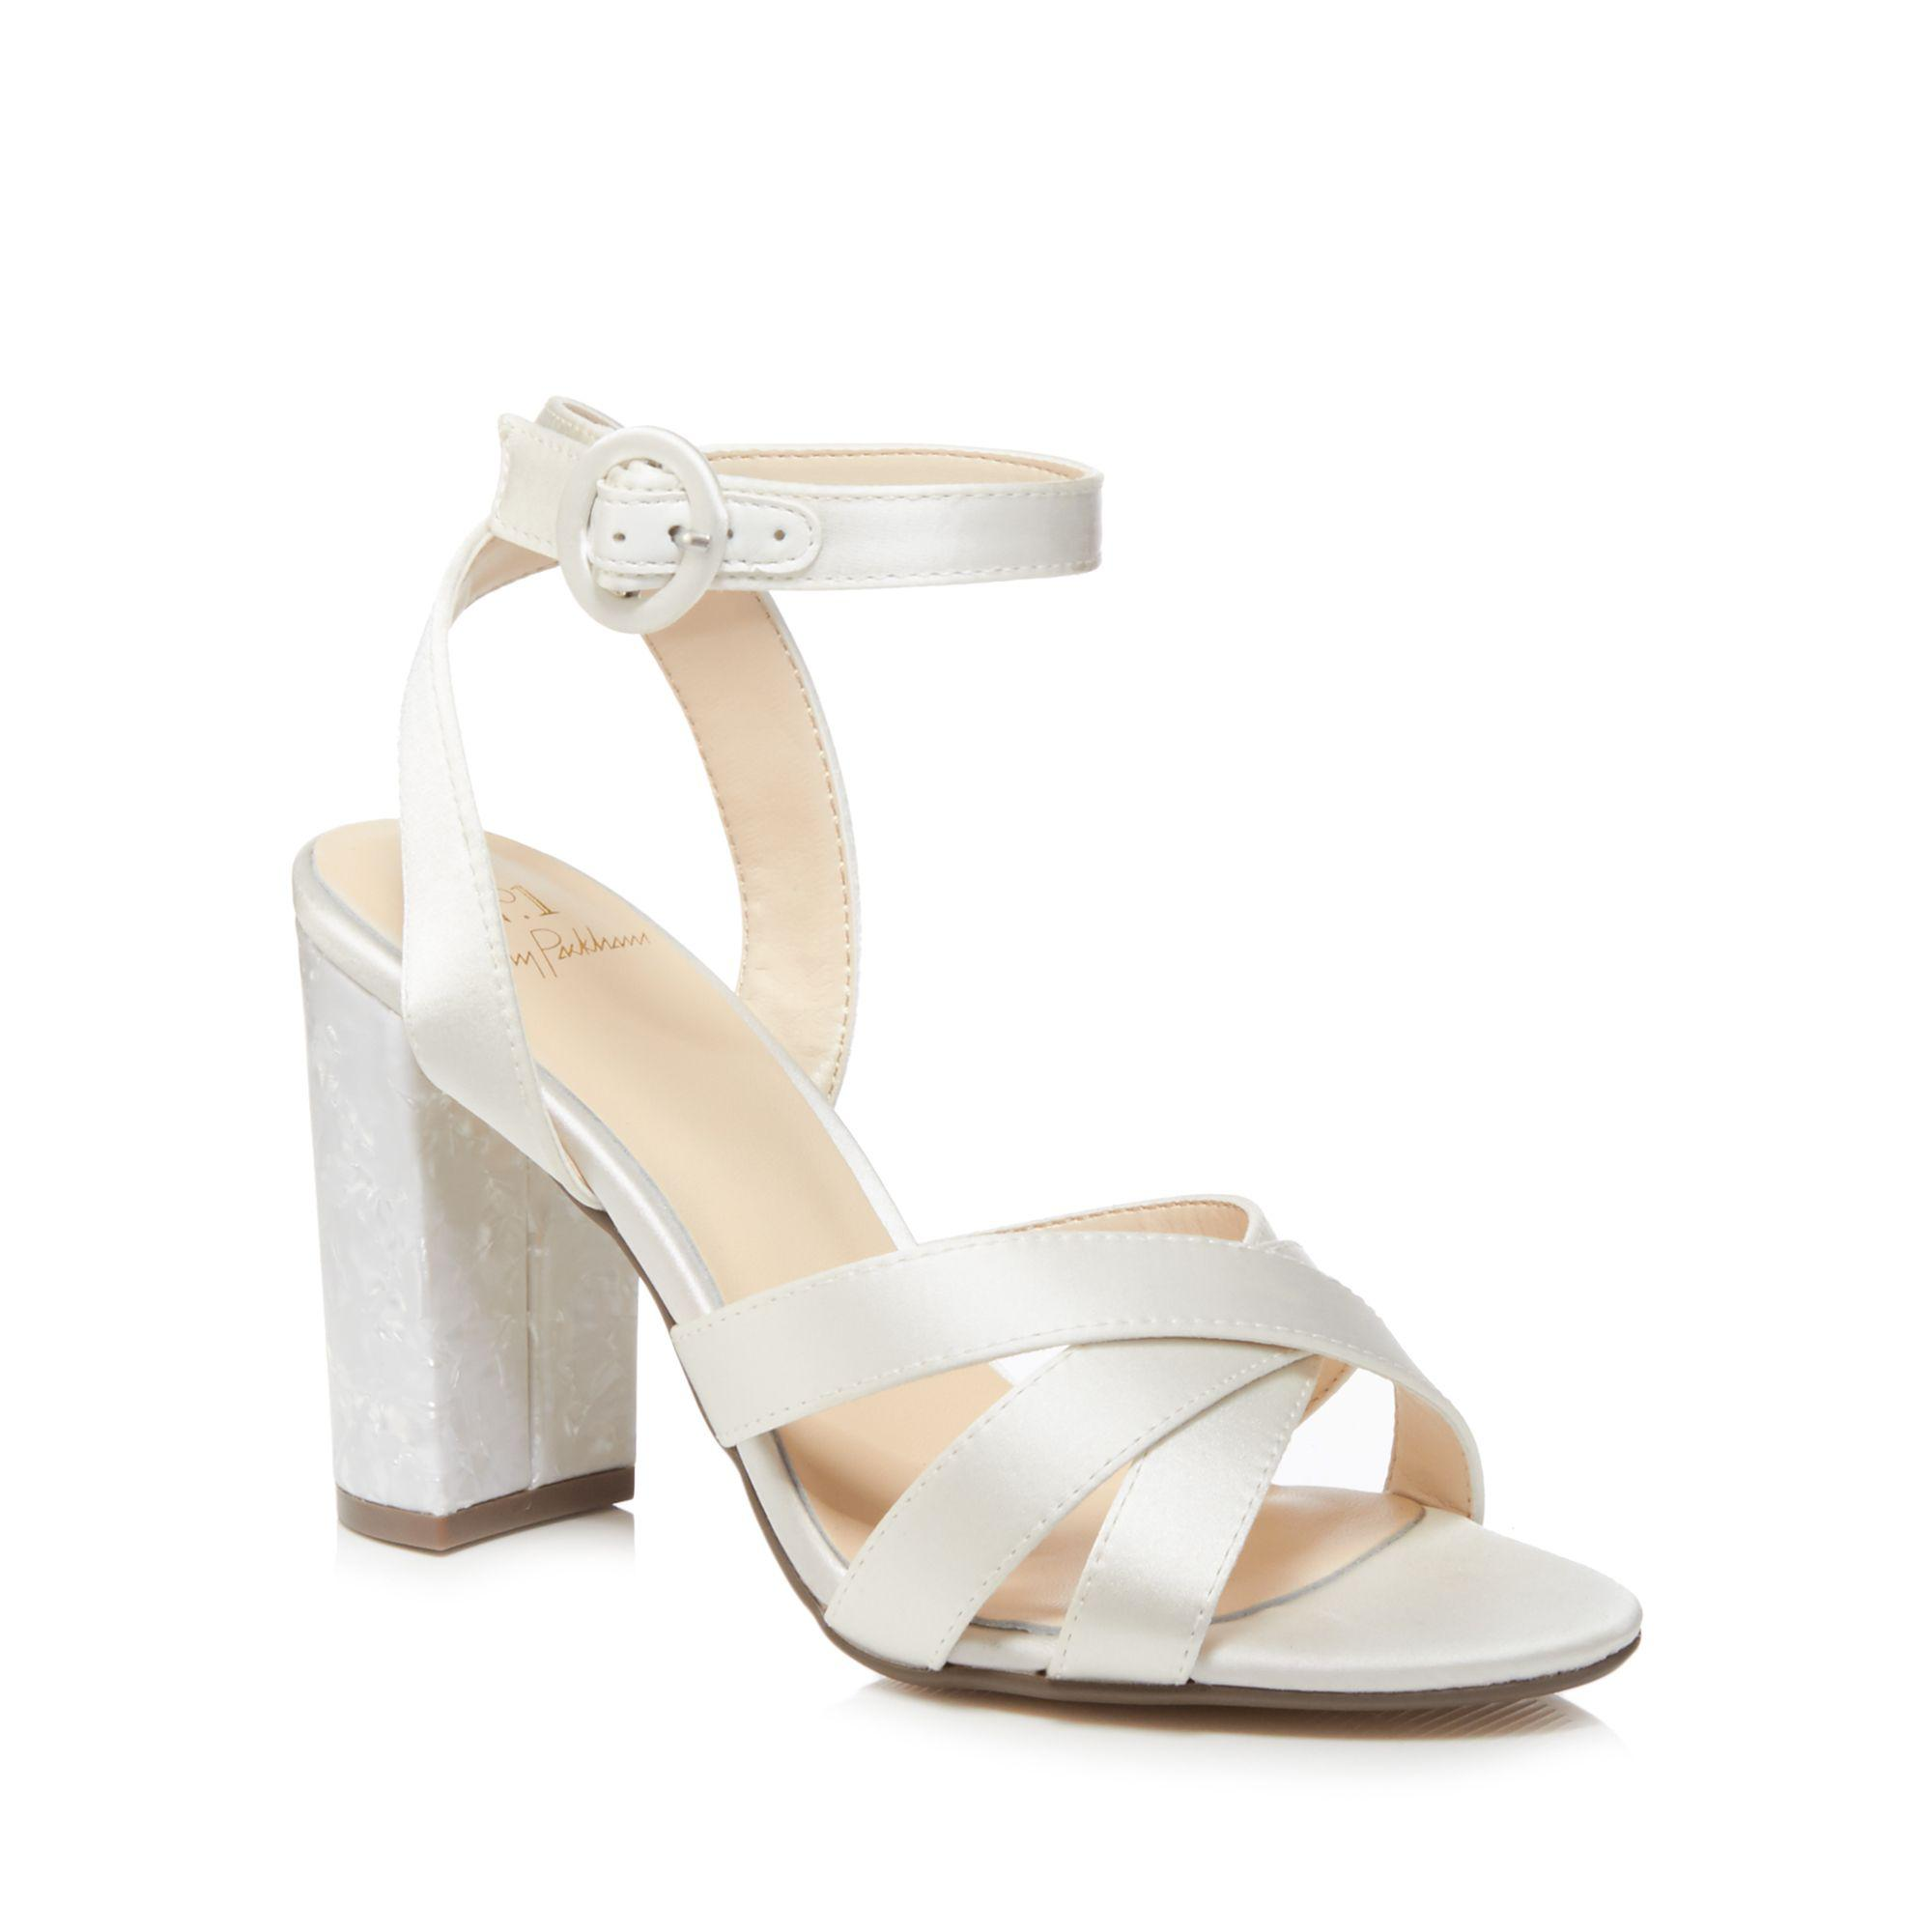 83492bb487f Jenny Packham. Women s White Ivory Satin  pearl  High Block Heel Ankle  Strap Sandals